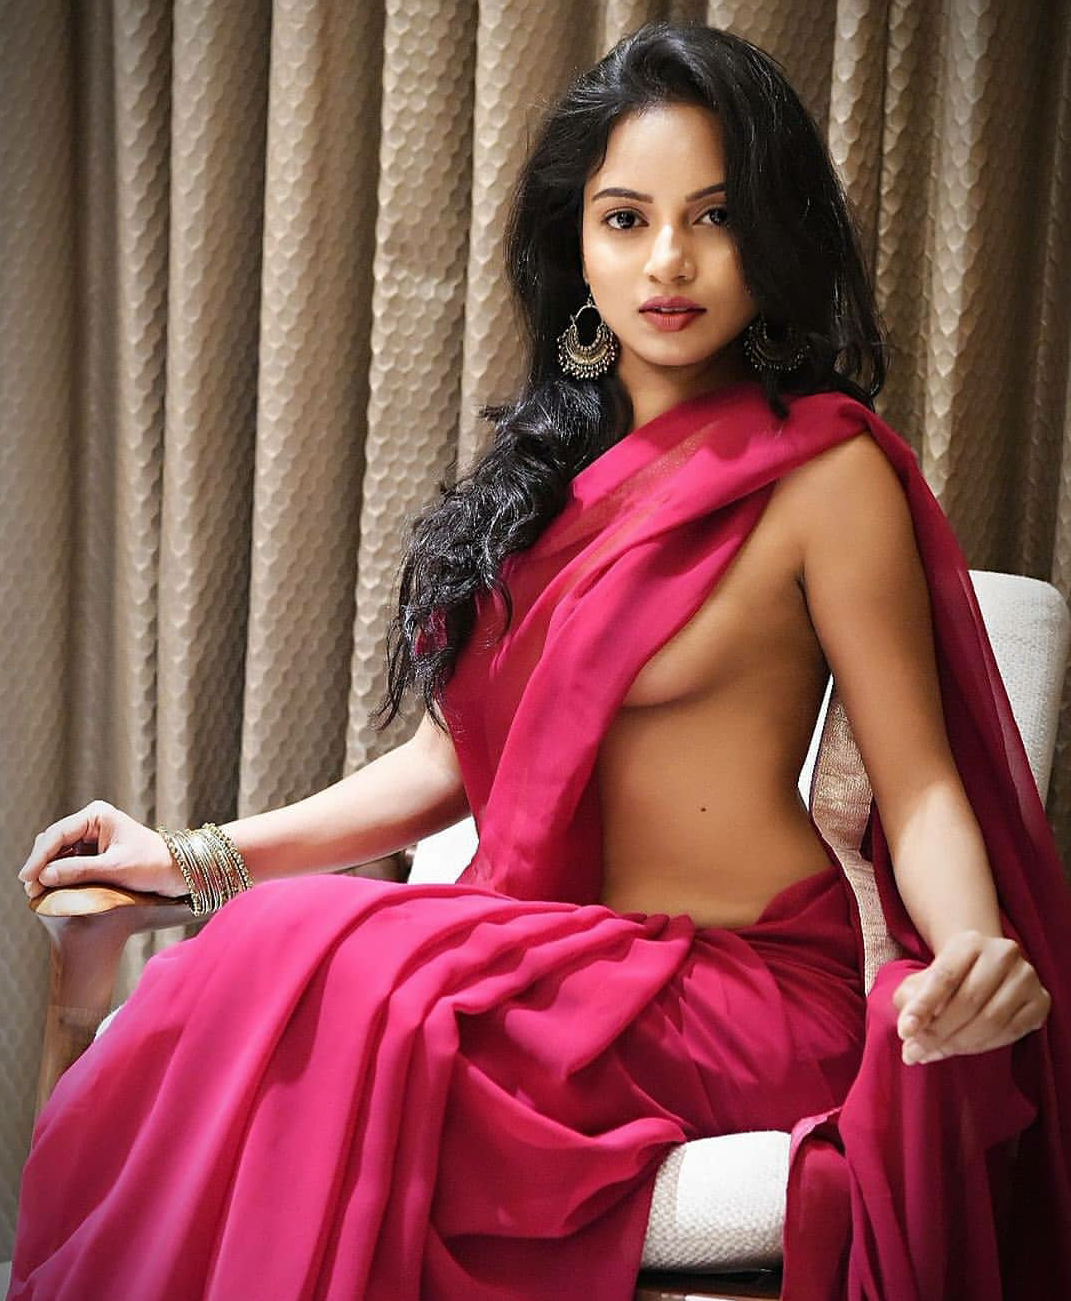 Hot indian lady sexy